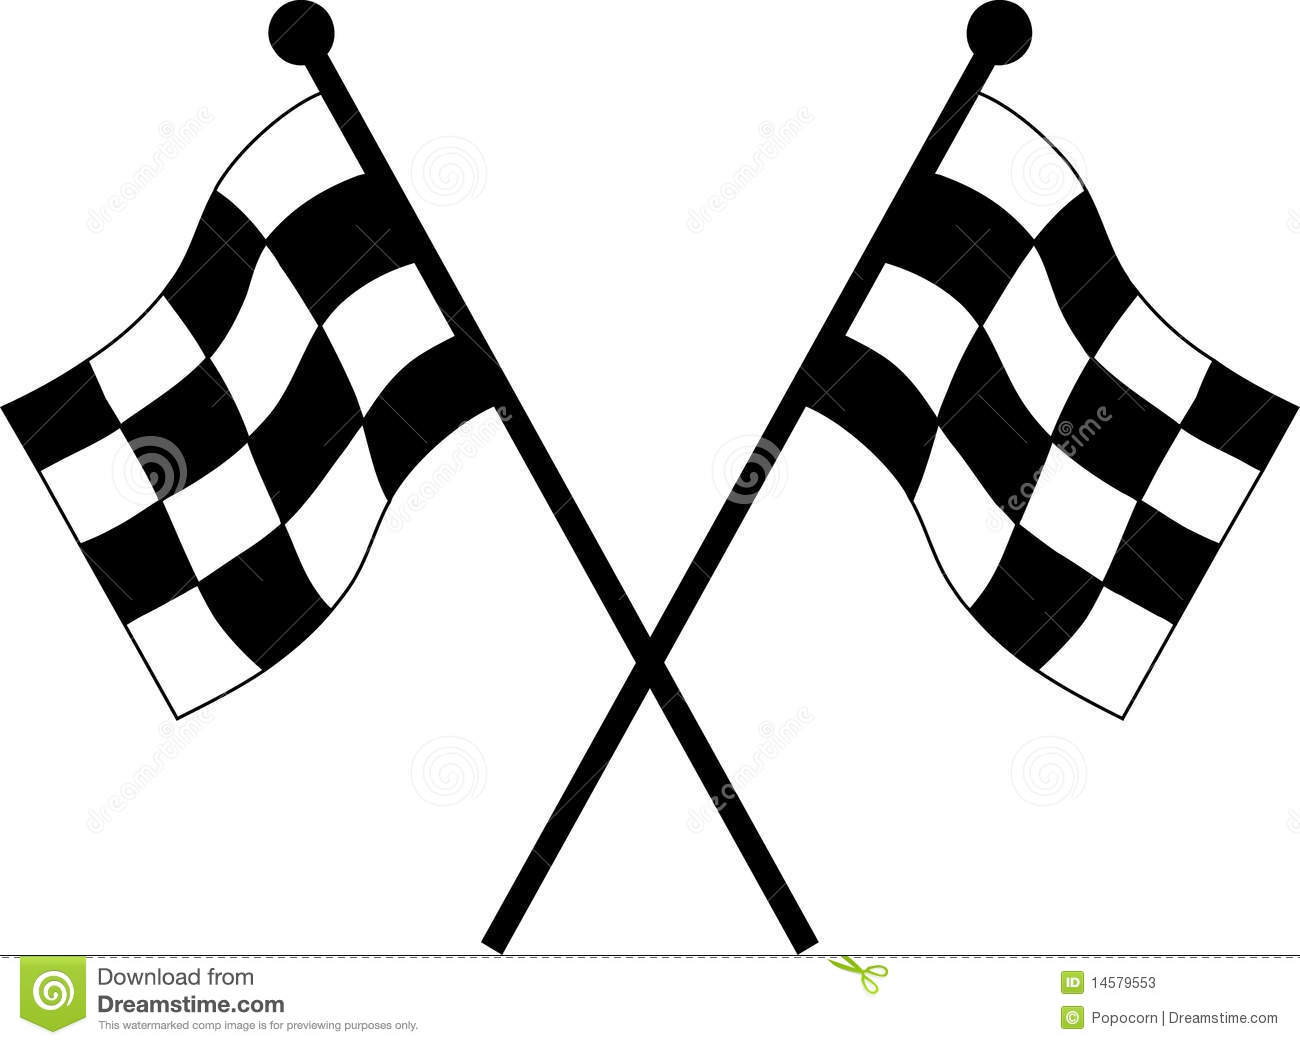 Racing Flags Clipart - Clipart Kid